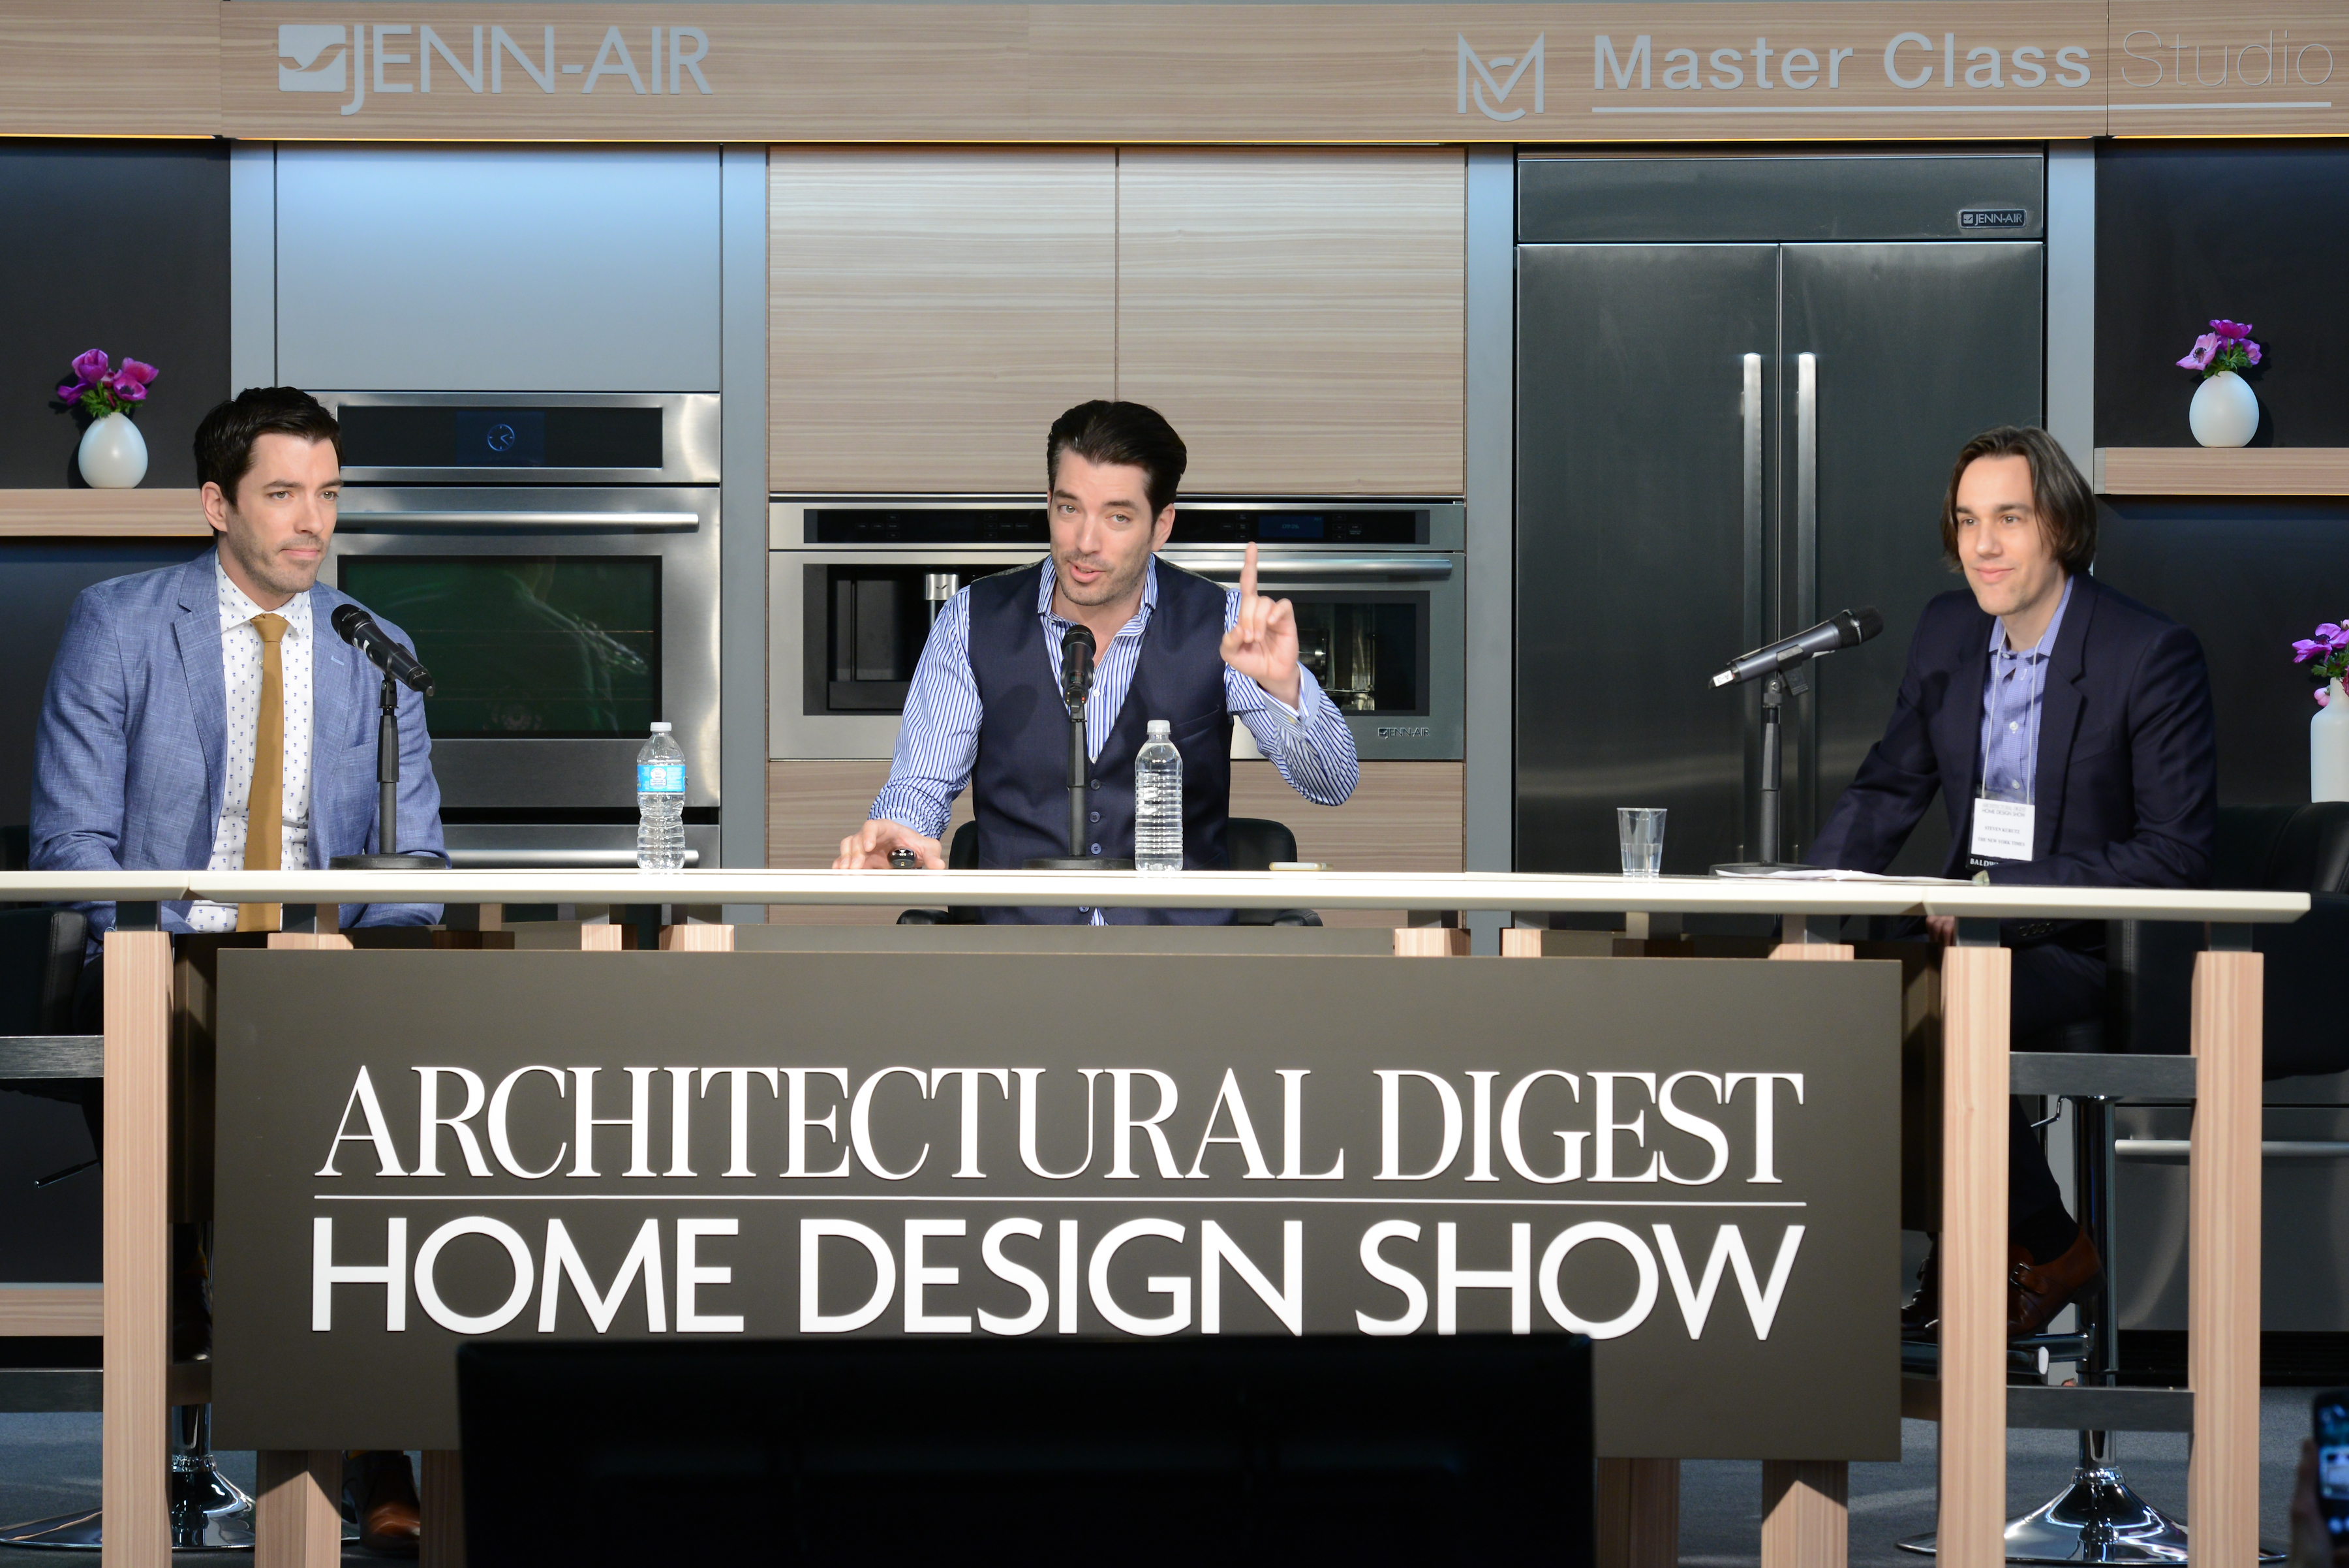 Architectural digest home design show 2015 ad360 for Architectural digest show